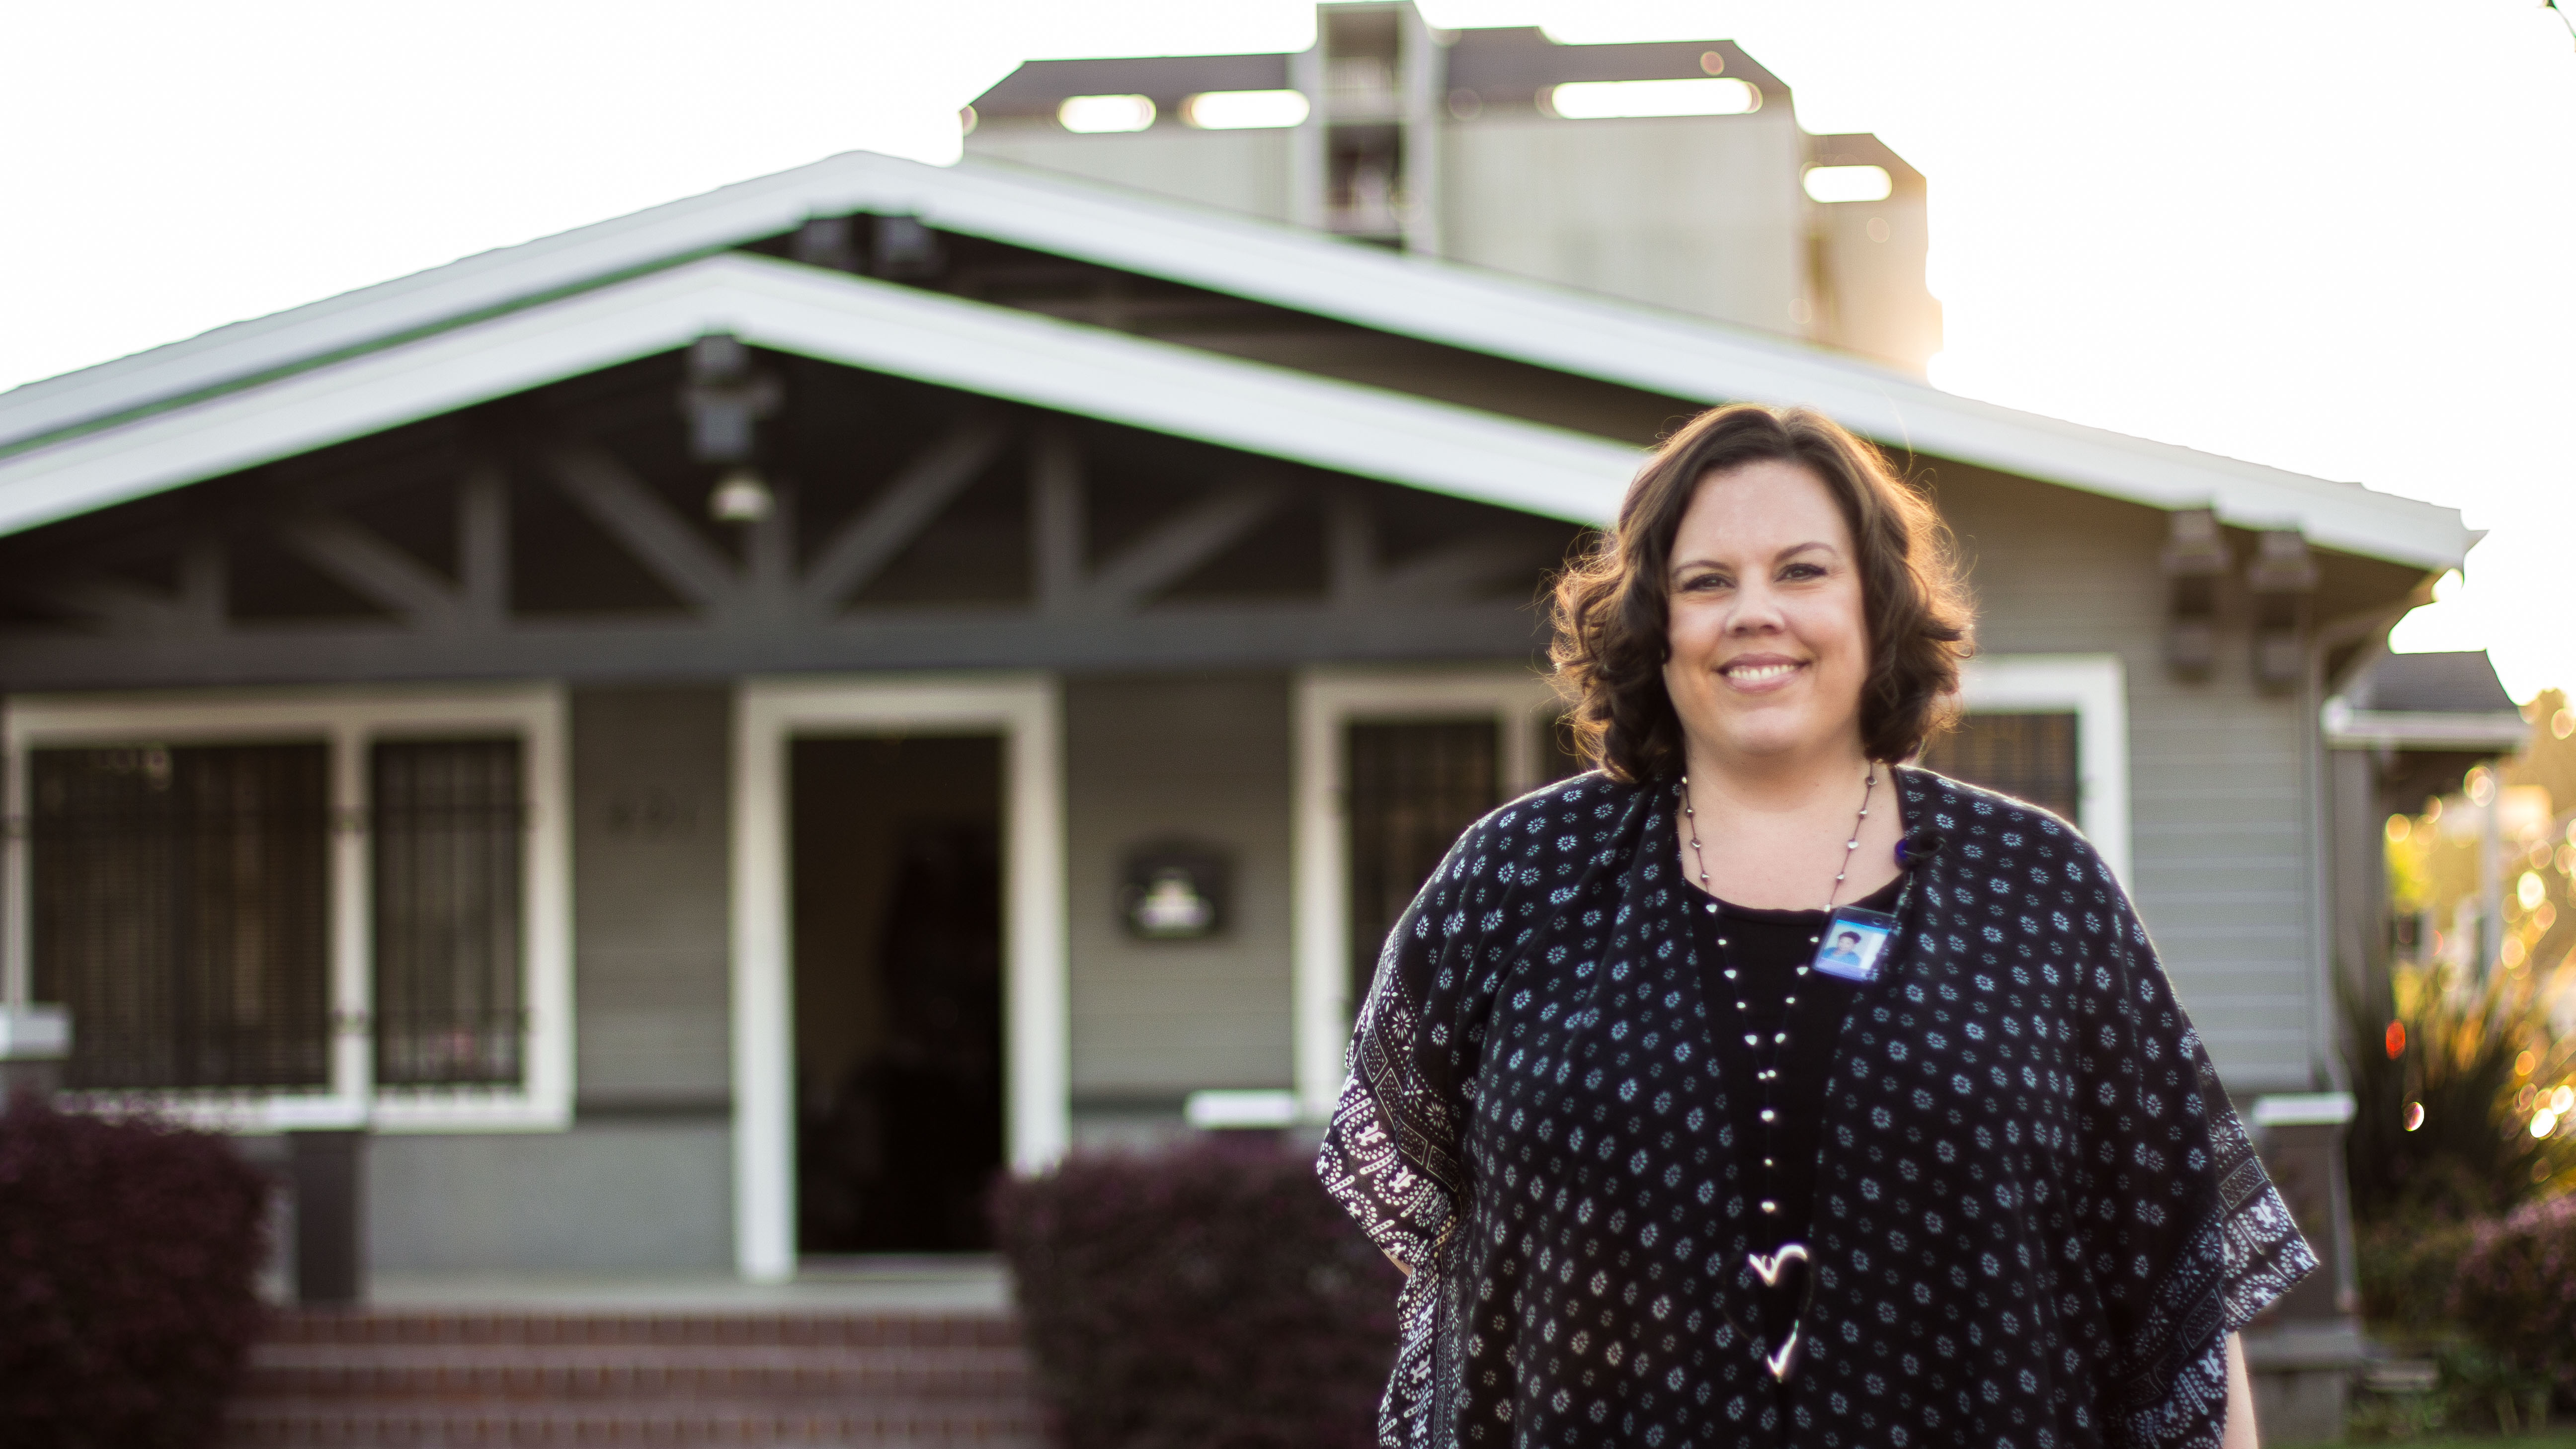 Freedom House: A New Level of Care for Trafficking Survivors